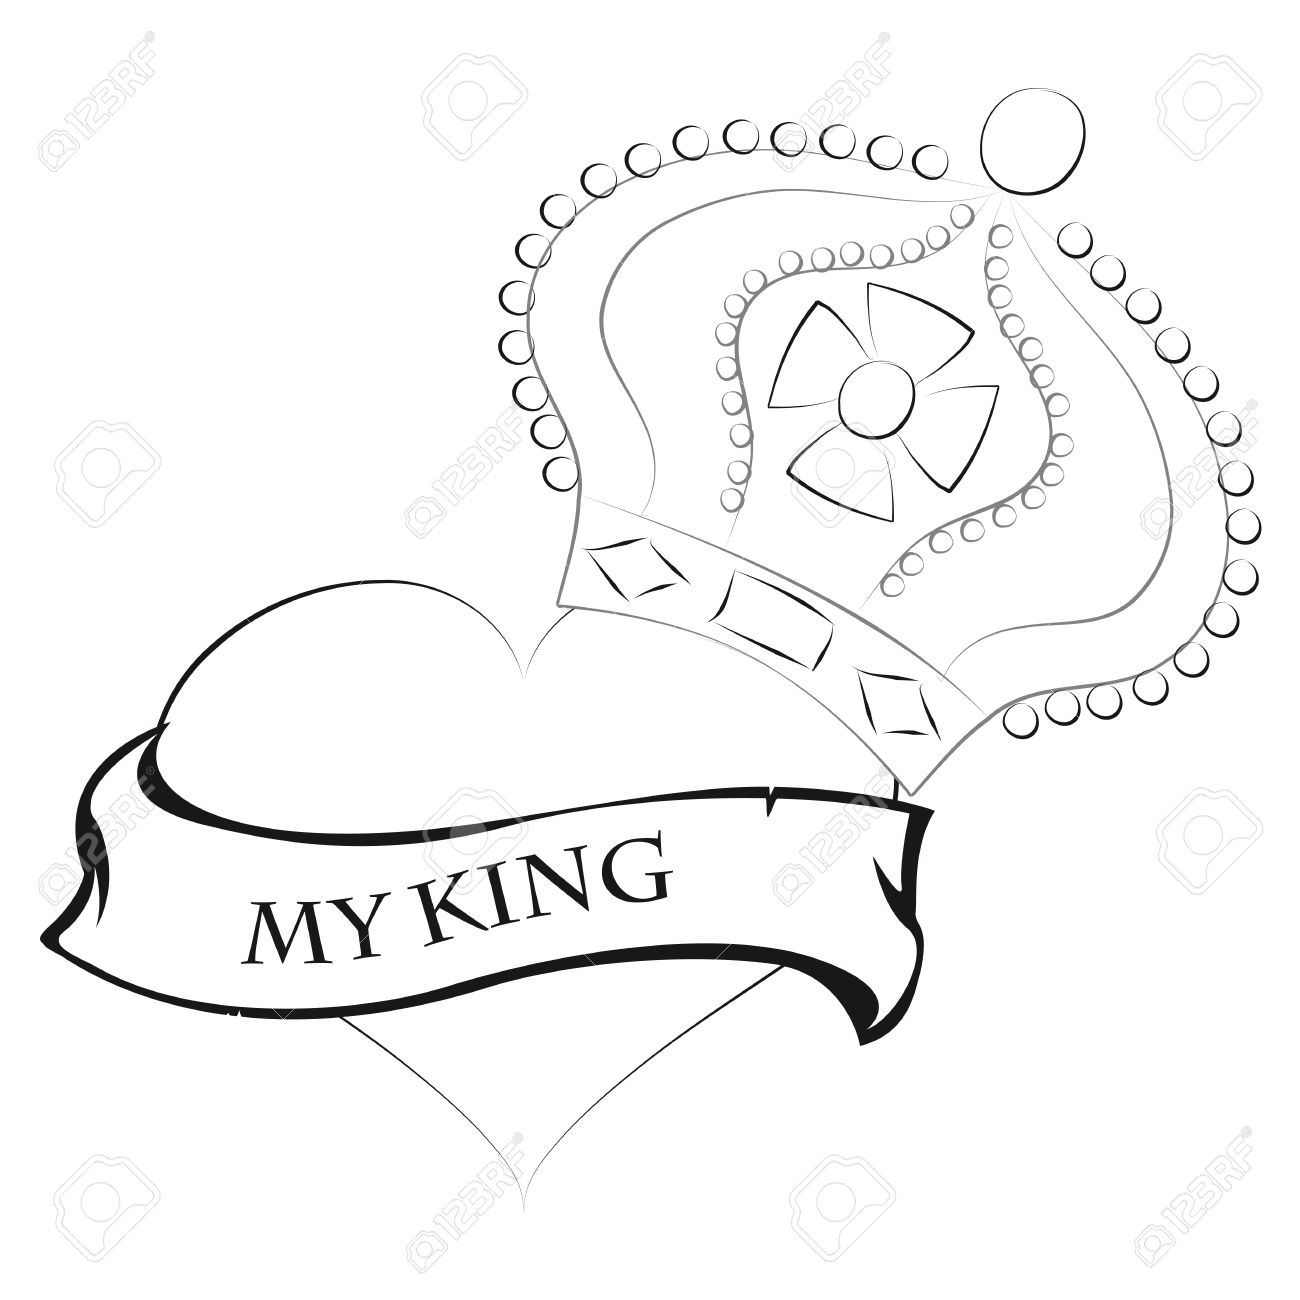 1300x1300 Pencil Drawing Of A Heart Shape With A King Crown King And My